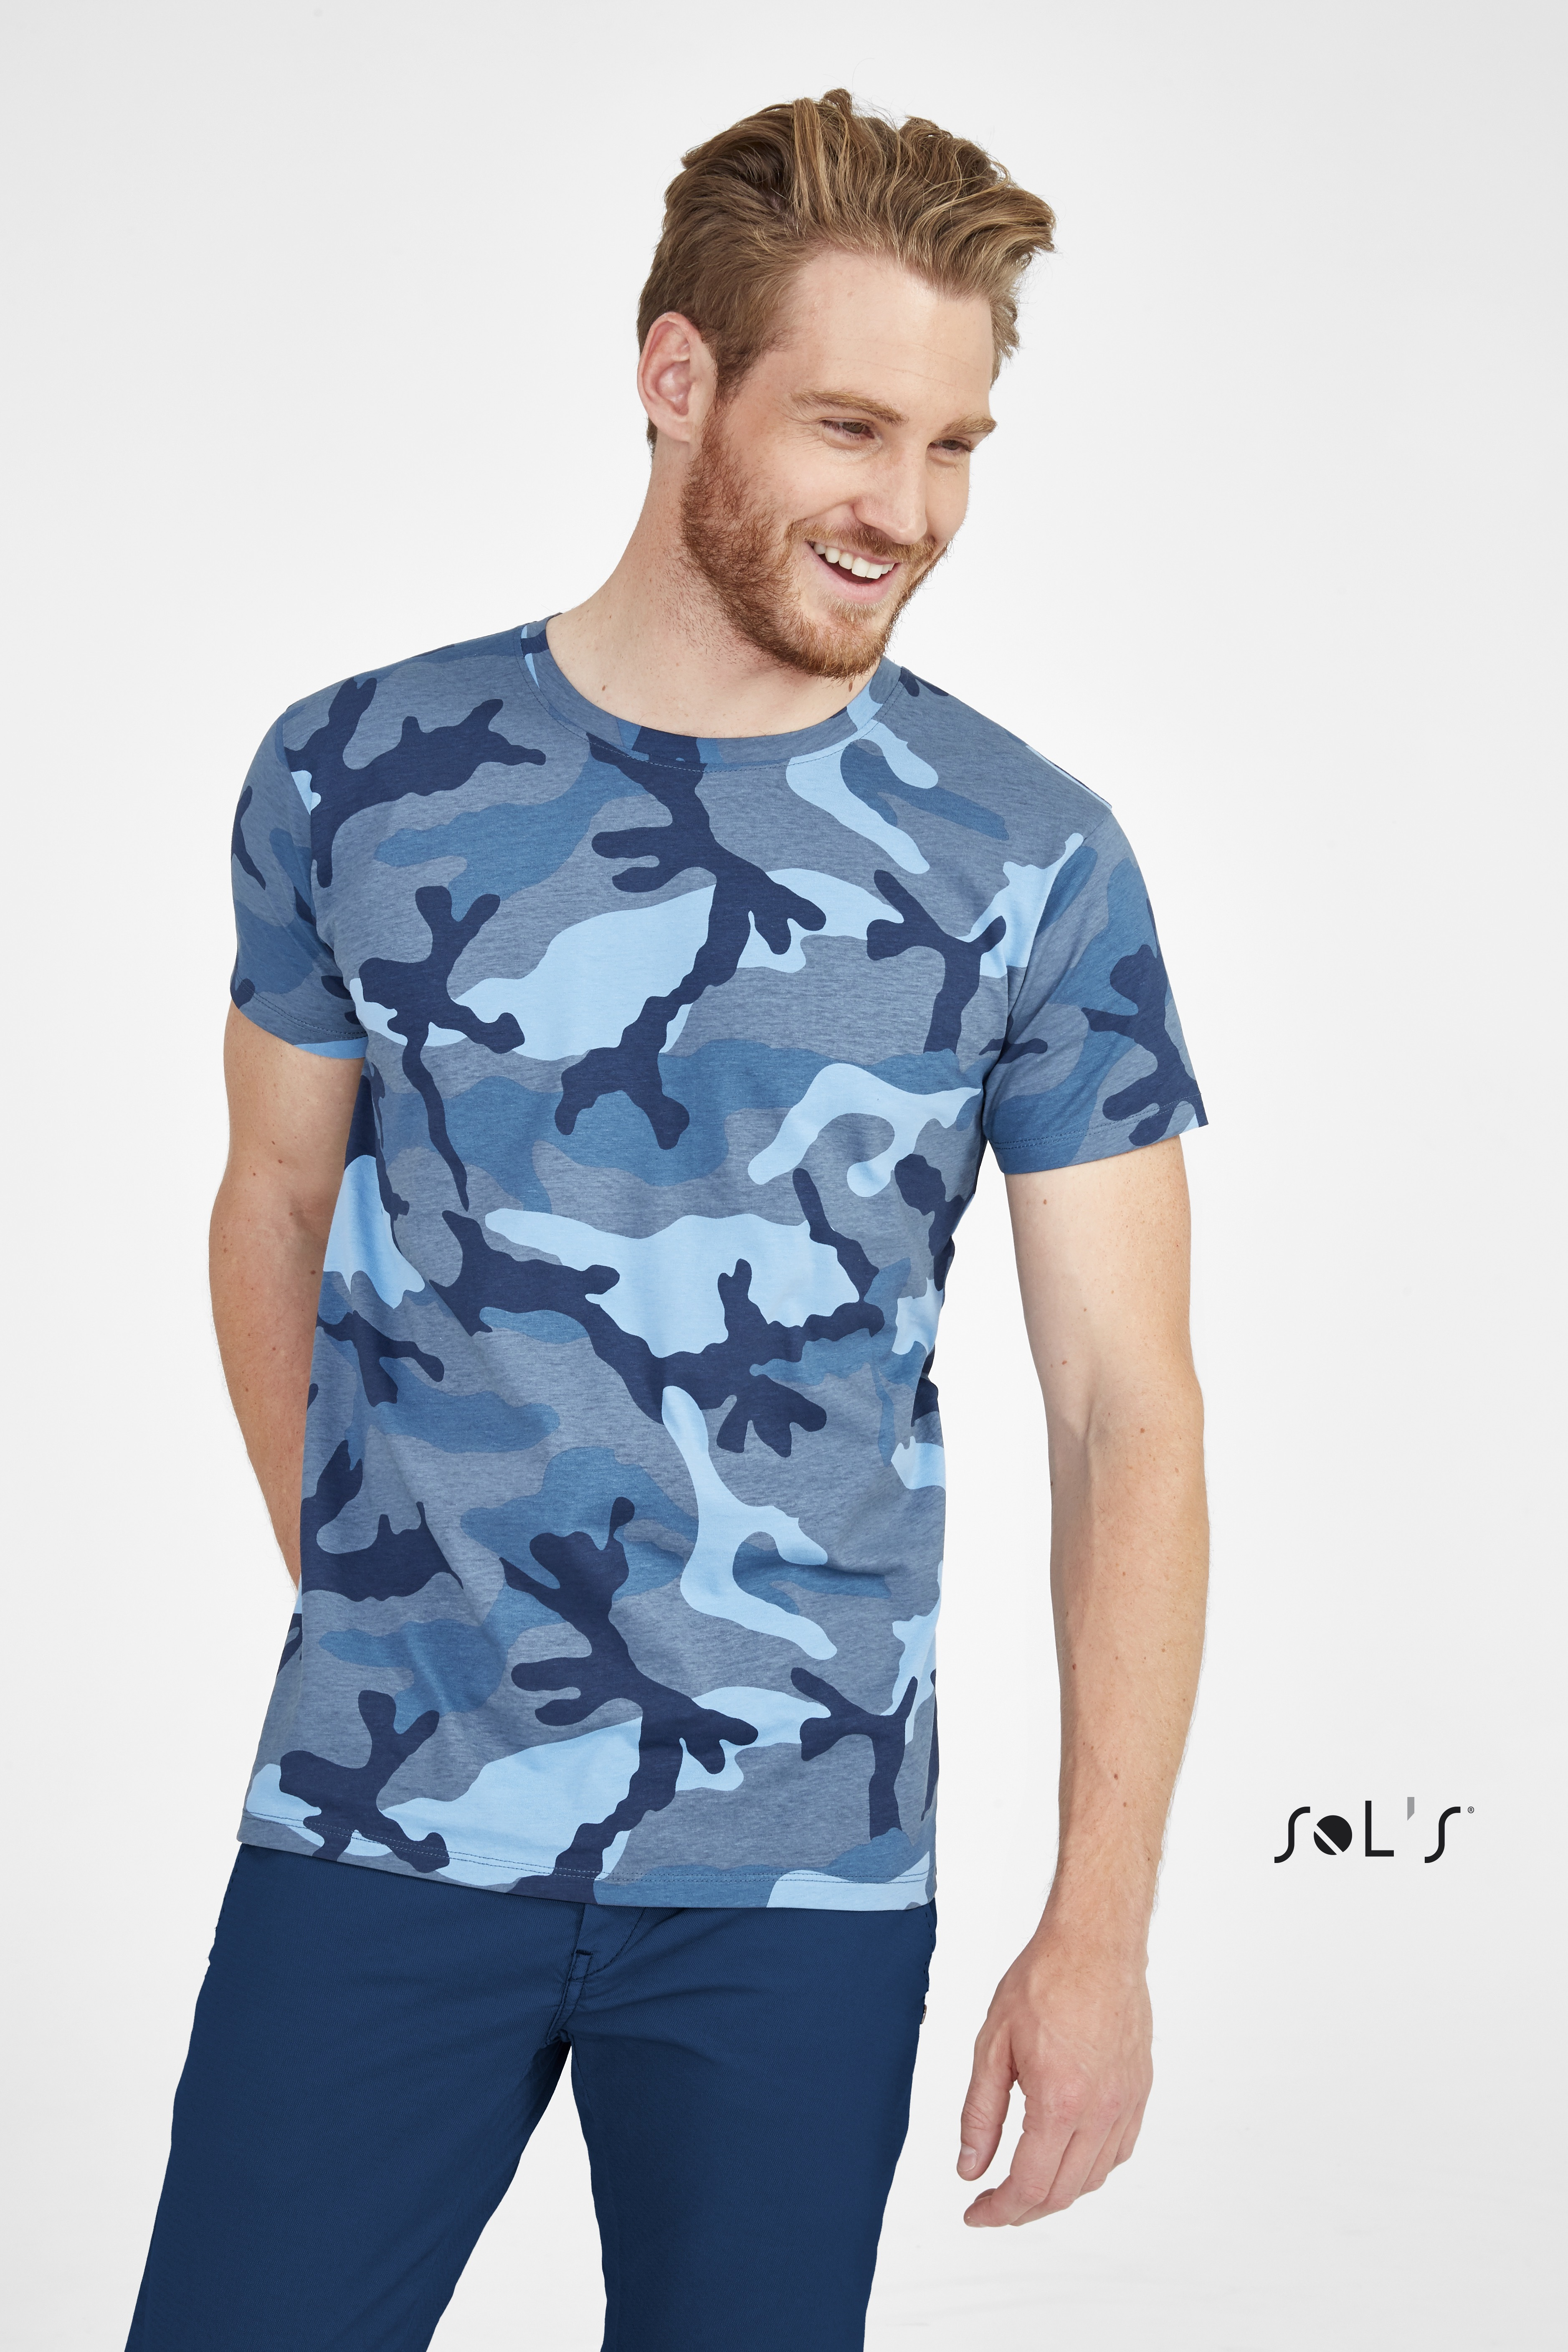 Tee-shirt homme camouflage